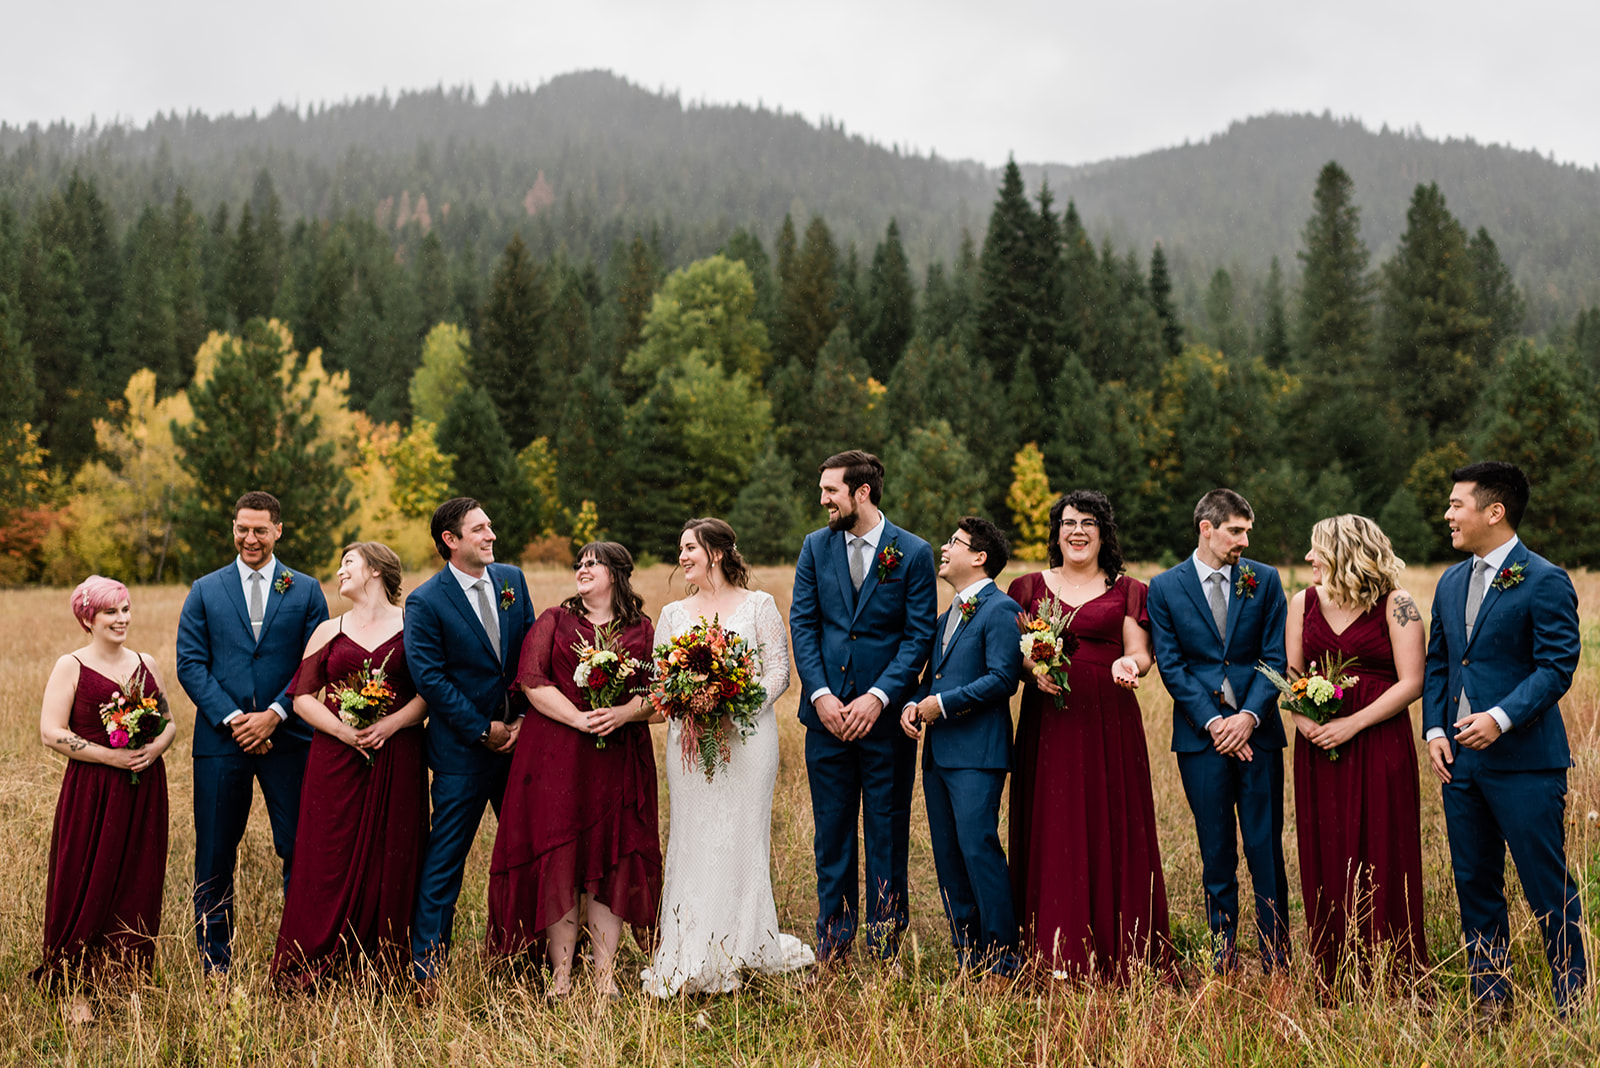 Wilson, Jamie, and their wedding party at their colorful fall Leavenworth wedding. Image by Forthright Photo, Seattle Wedding Photographers.